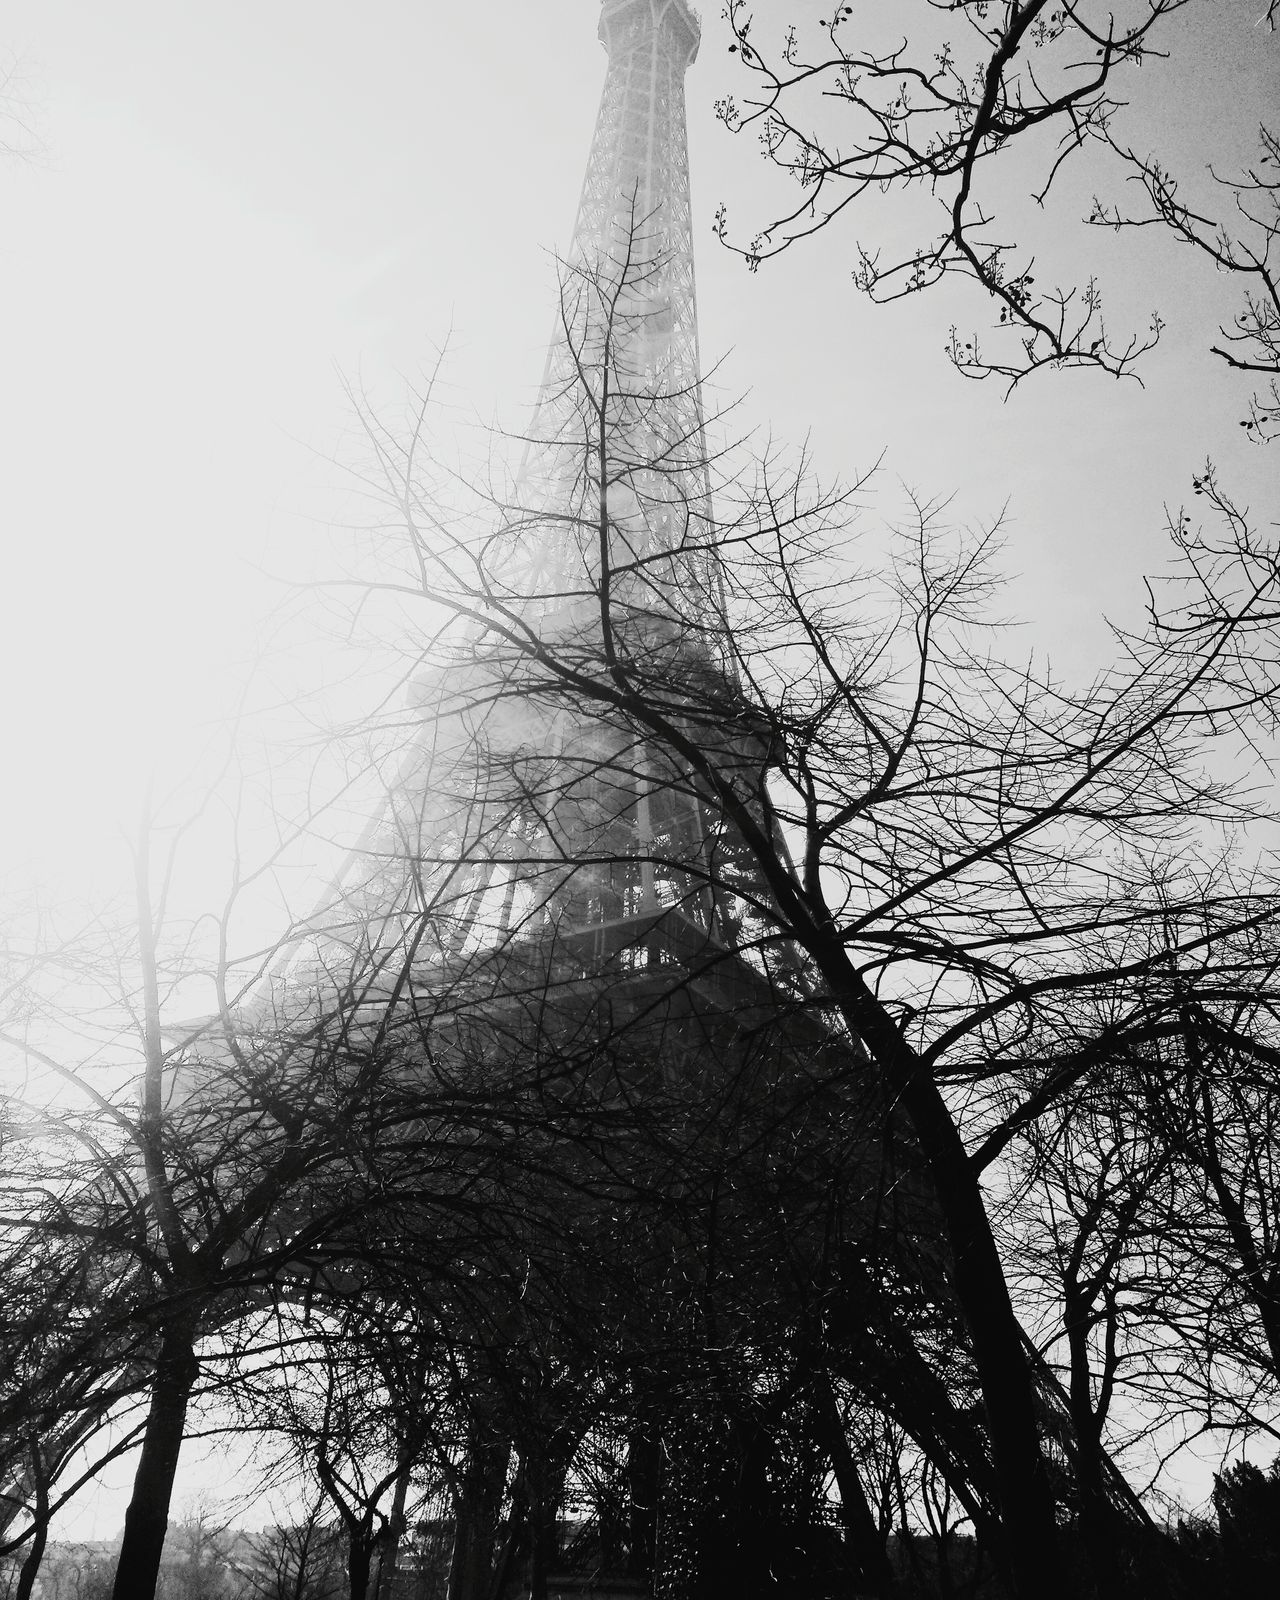 Sky Day France Branch Eiffel Tower Low Angle View Paris Travel Destinations Outdoors Cloud - Sky Tree Built Structure Building Exterior Art Architecture Historical Building Travel Travel Photography Tourism Tourist Attraction  Black And White Black & White